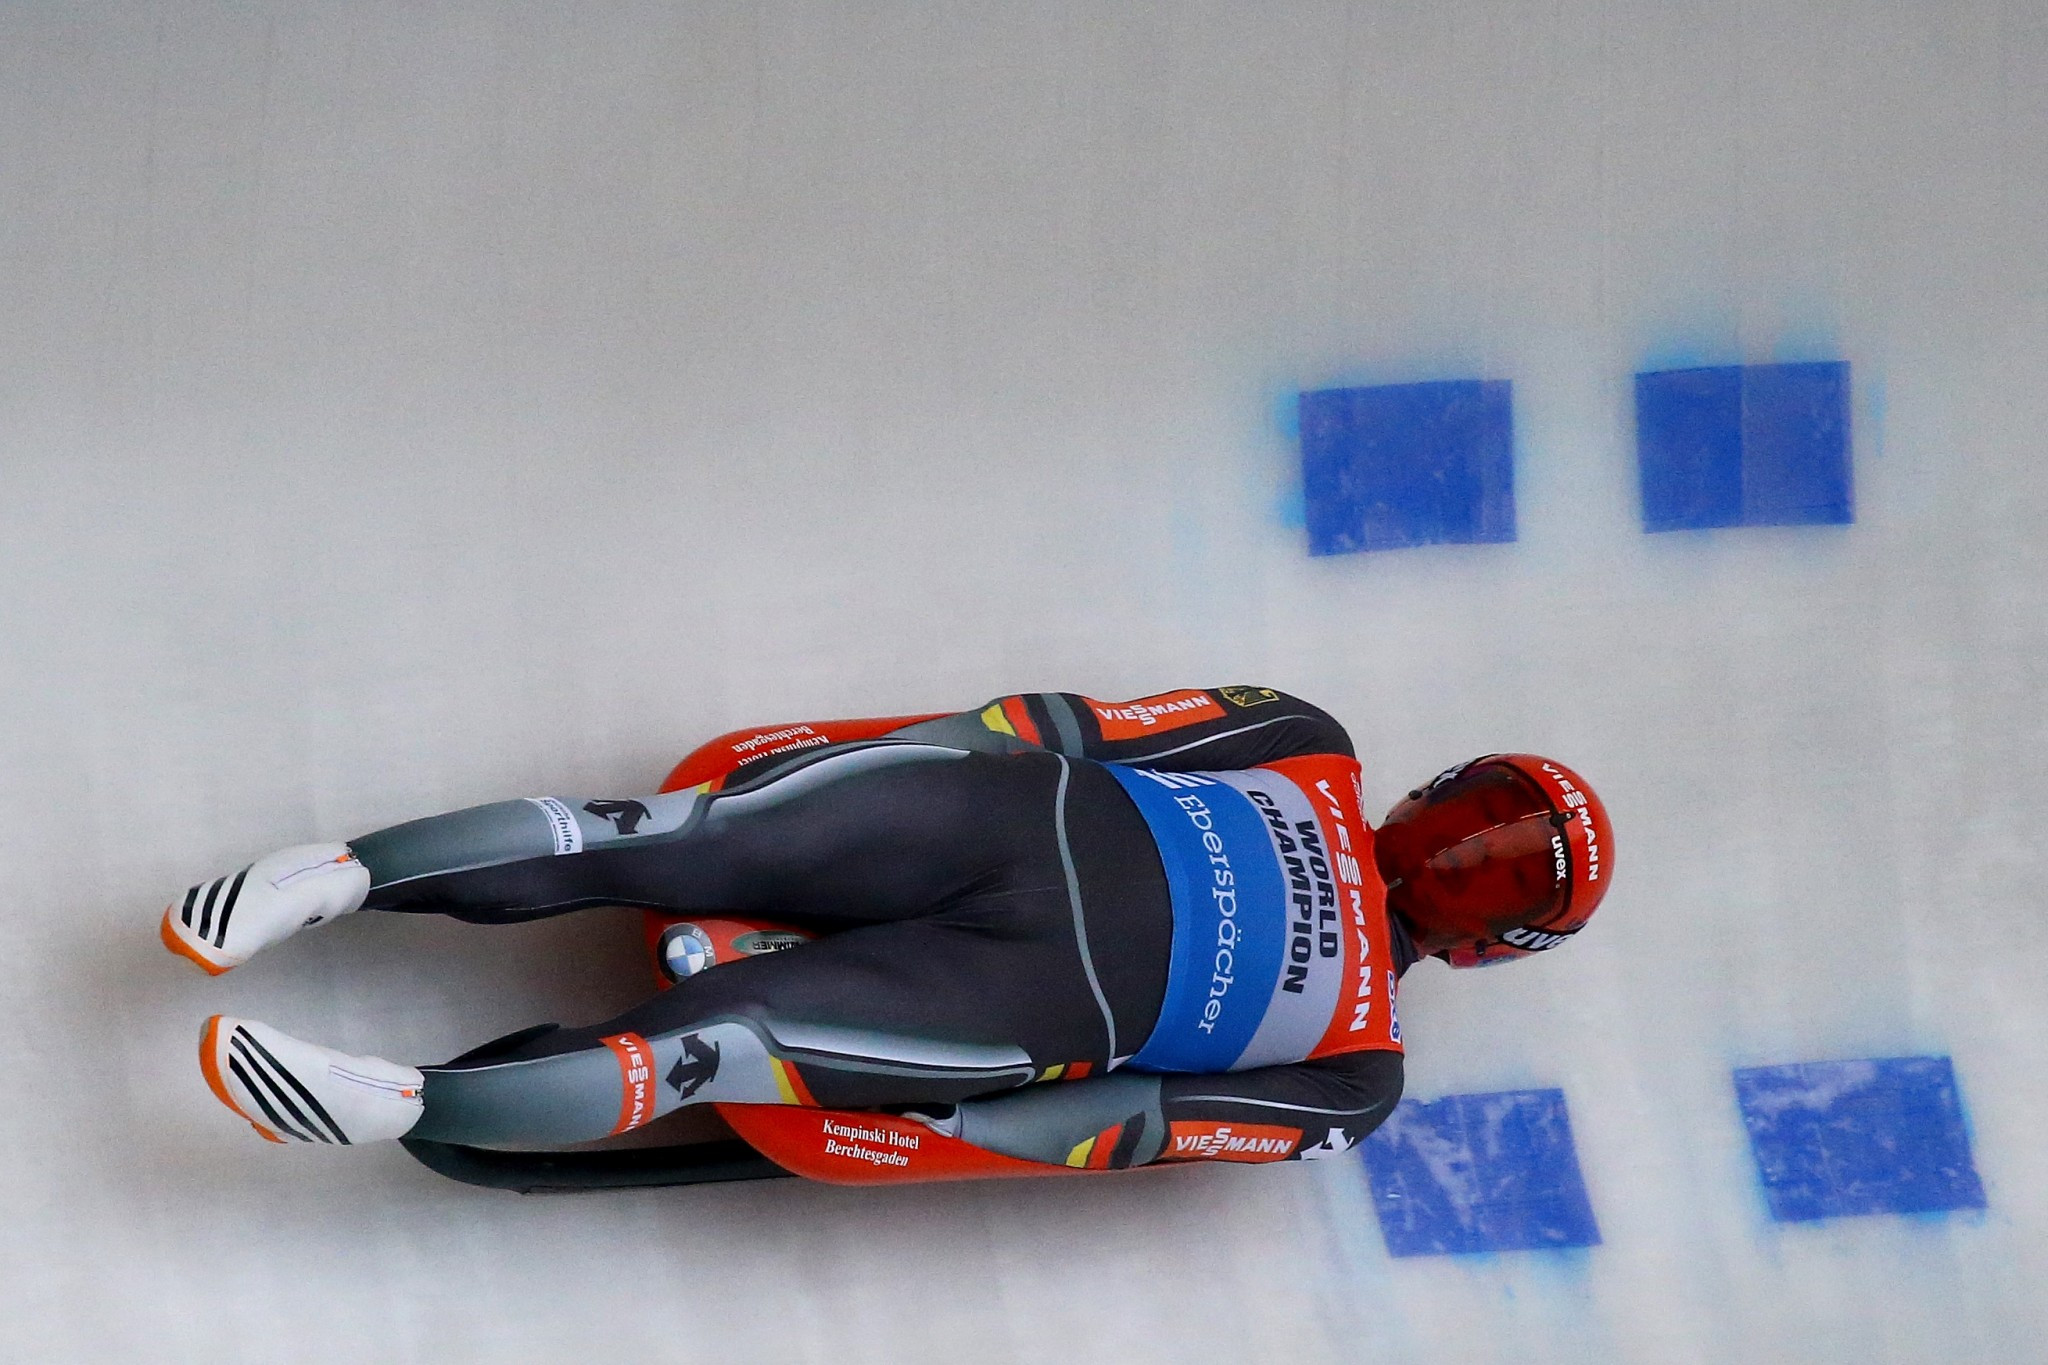 Infront markets sponsorship packages for luge events around the world ©Getty Images